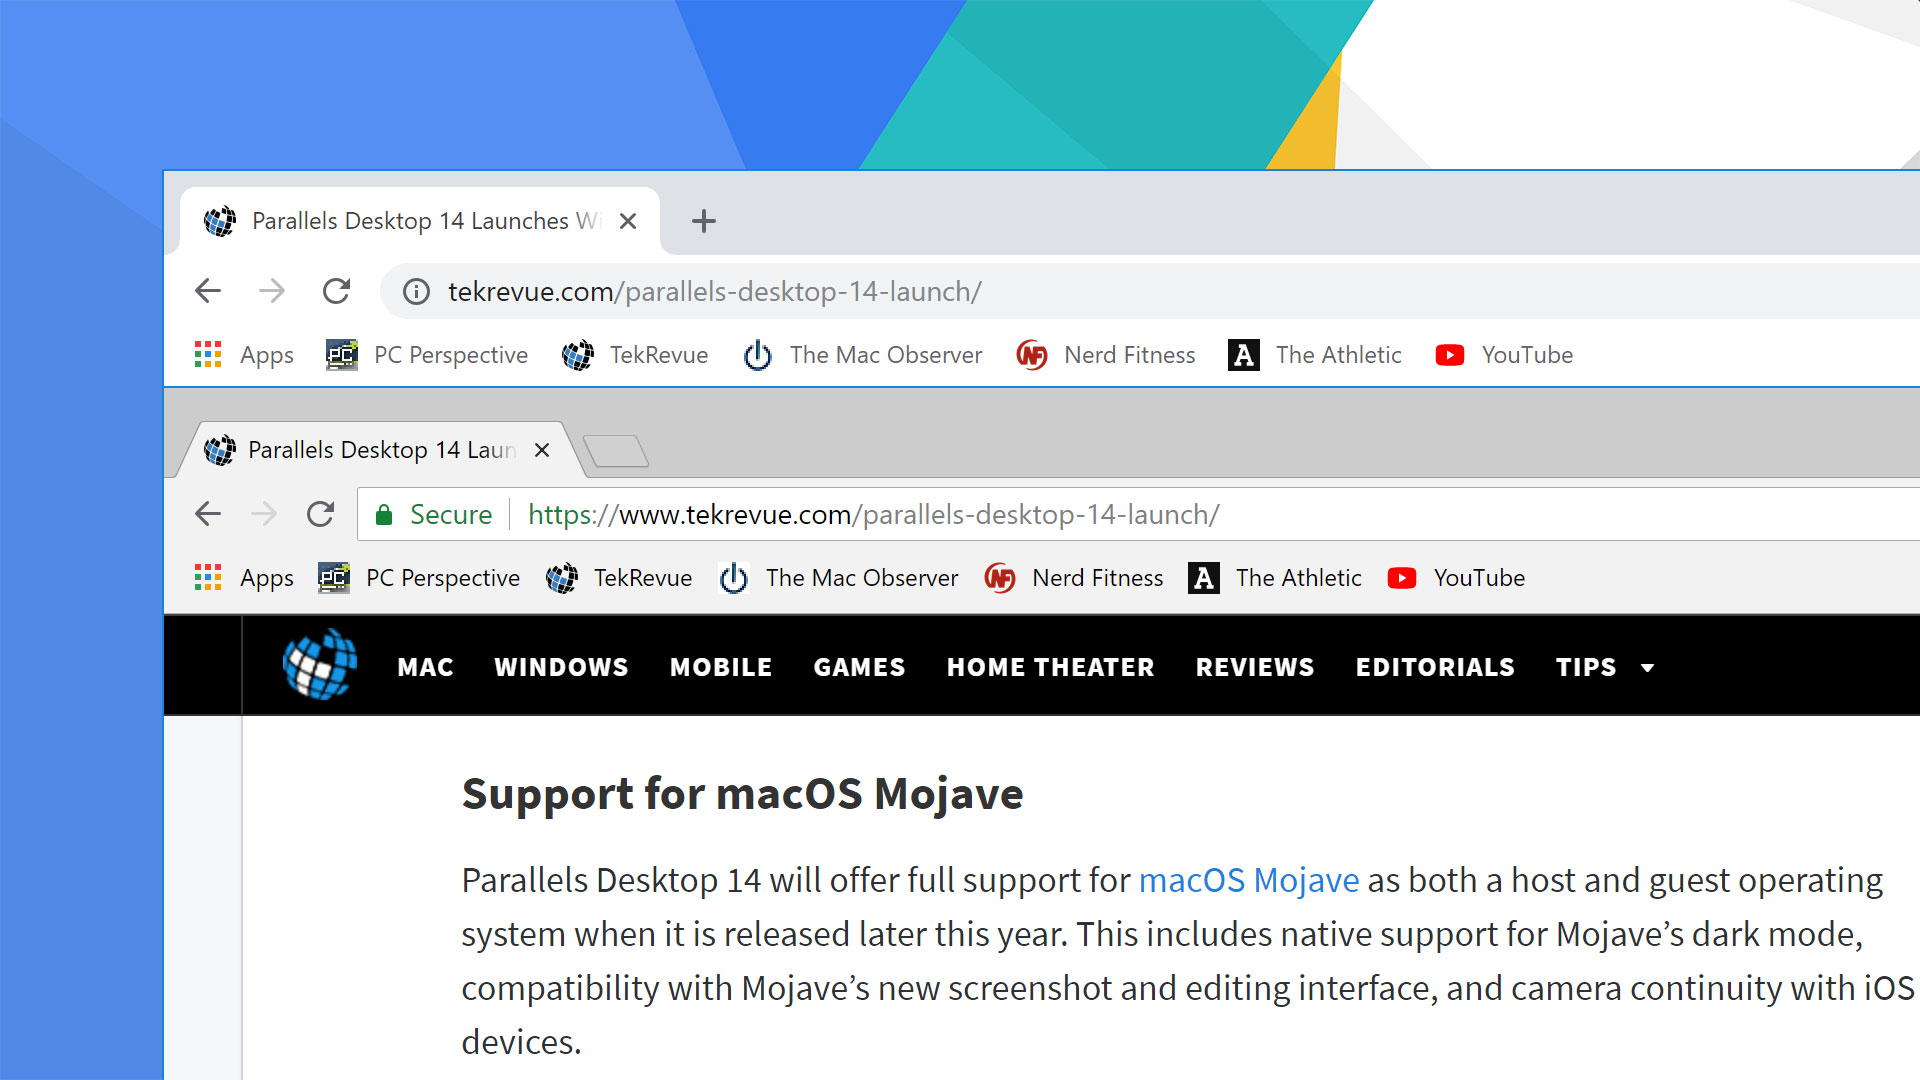 How to Switch Back to the Old Chrome Design